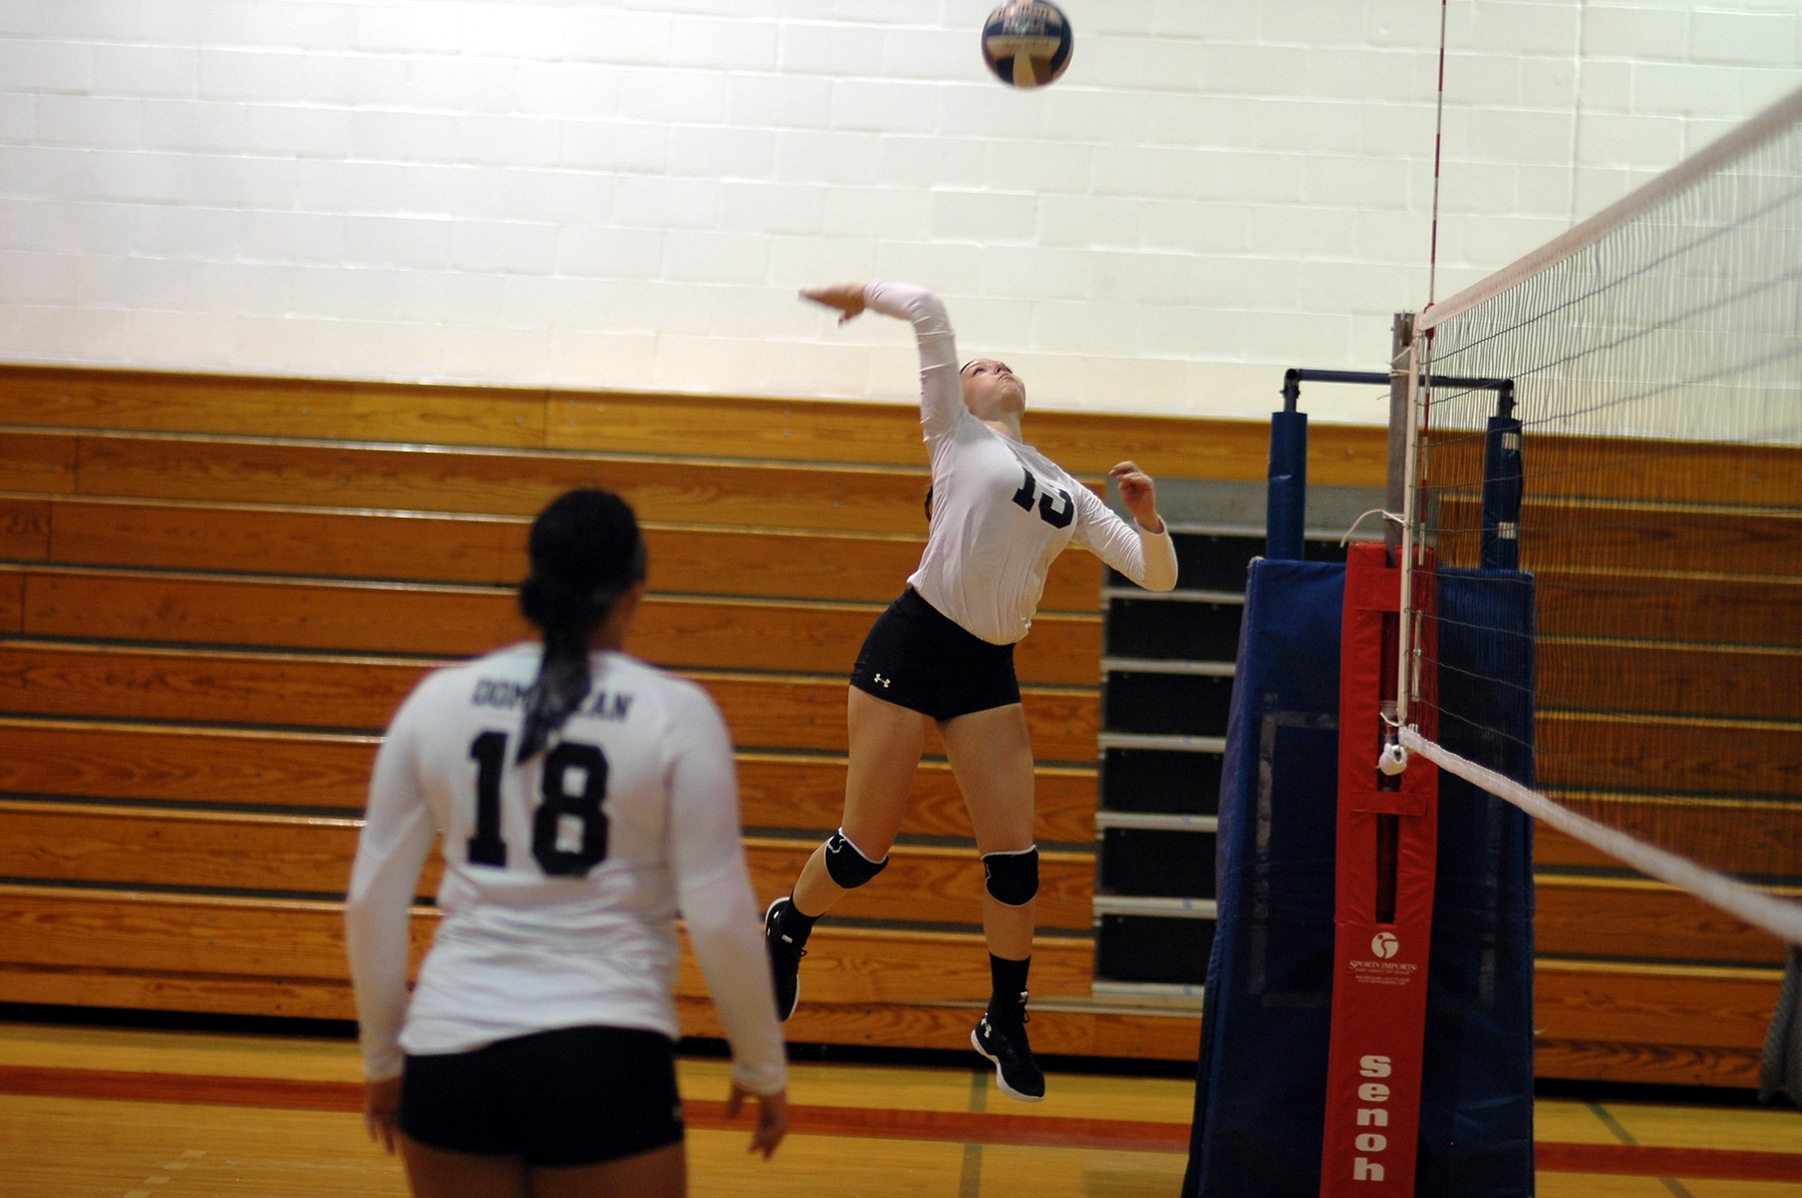 LADY CHARGERS SUFFER TOUGH LOSS TO MERCY COLLEGE